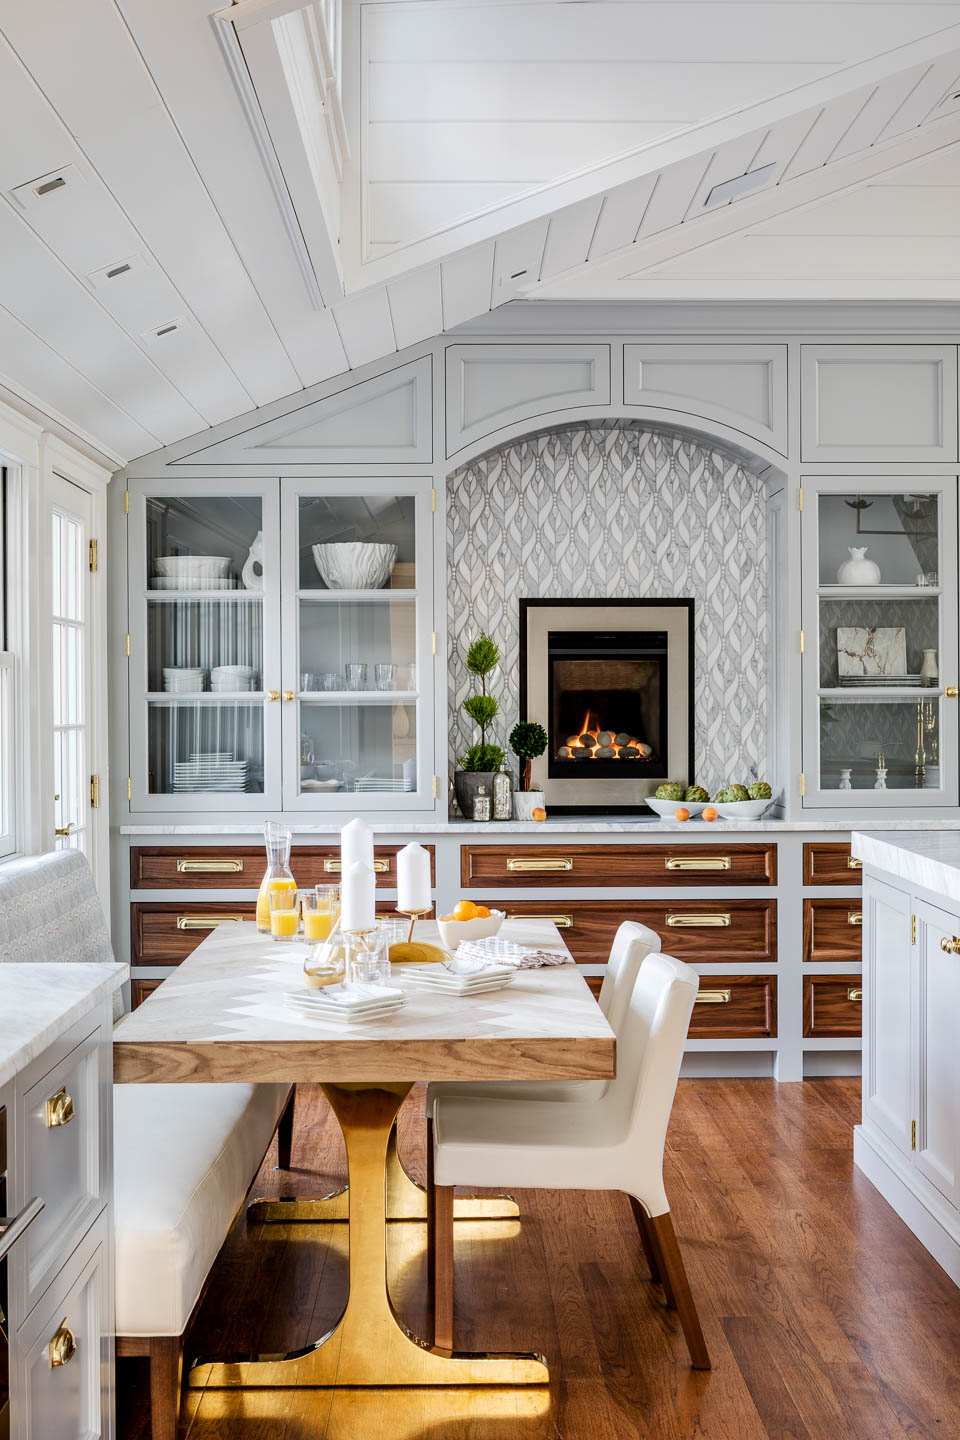 Digs, Digs Design, Matunuck, Matunuck Beach, Beach Design, Rhode Island Interior Design, Interior Design, Renovation, Beach Design, Beach Kitchen, Kitchen, Kitchen Design, Coastal Living, Butcher Block Counter, Tile Backsplash